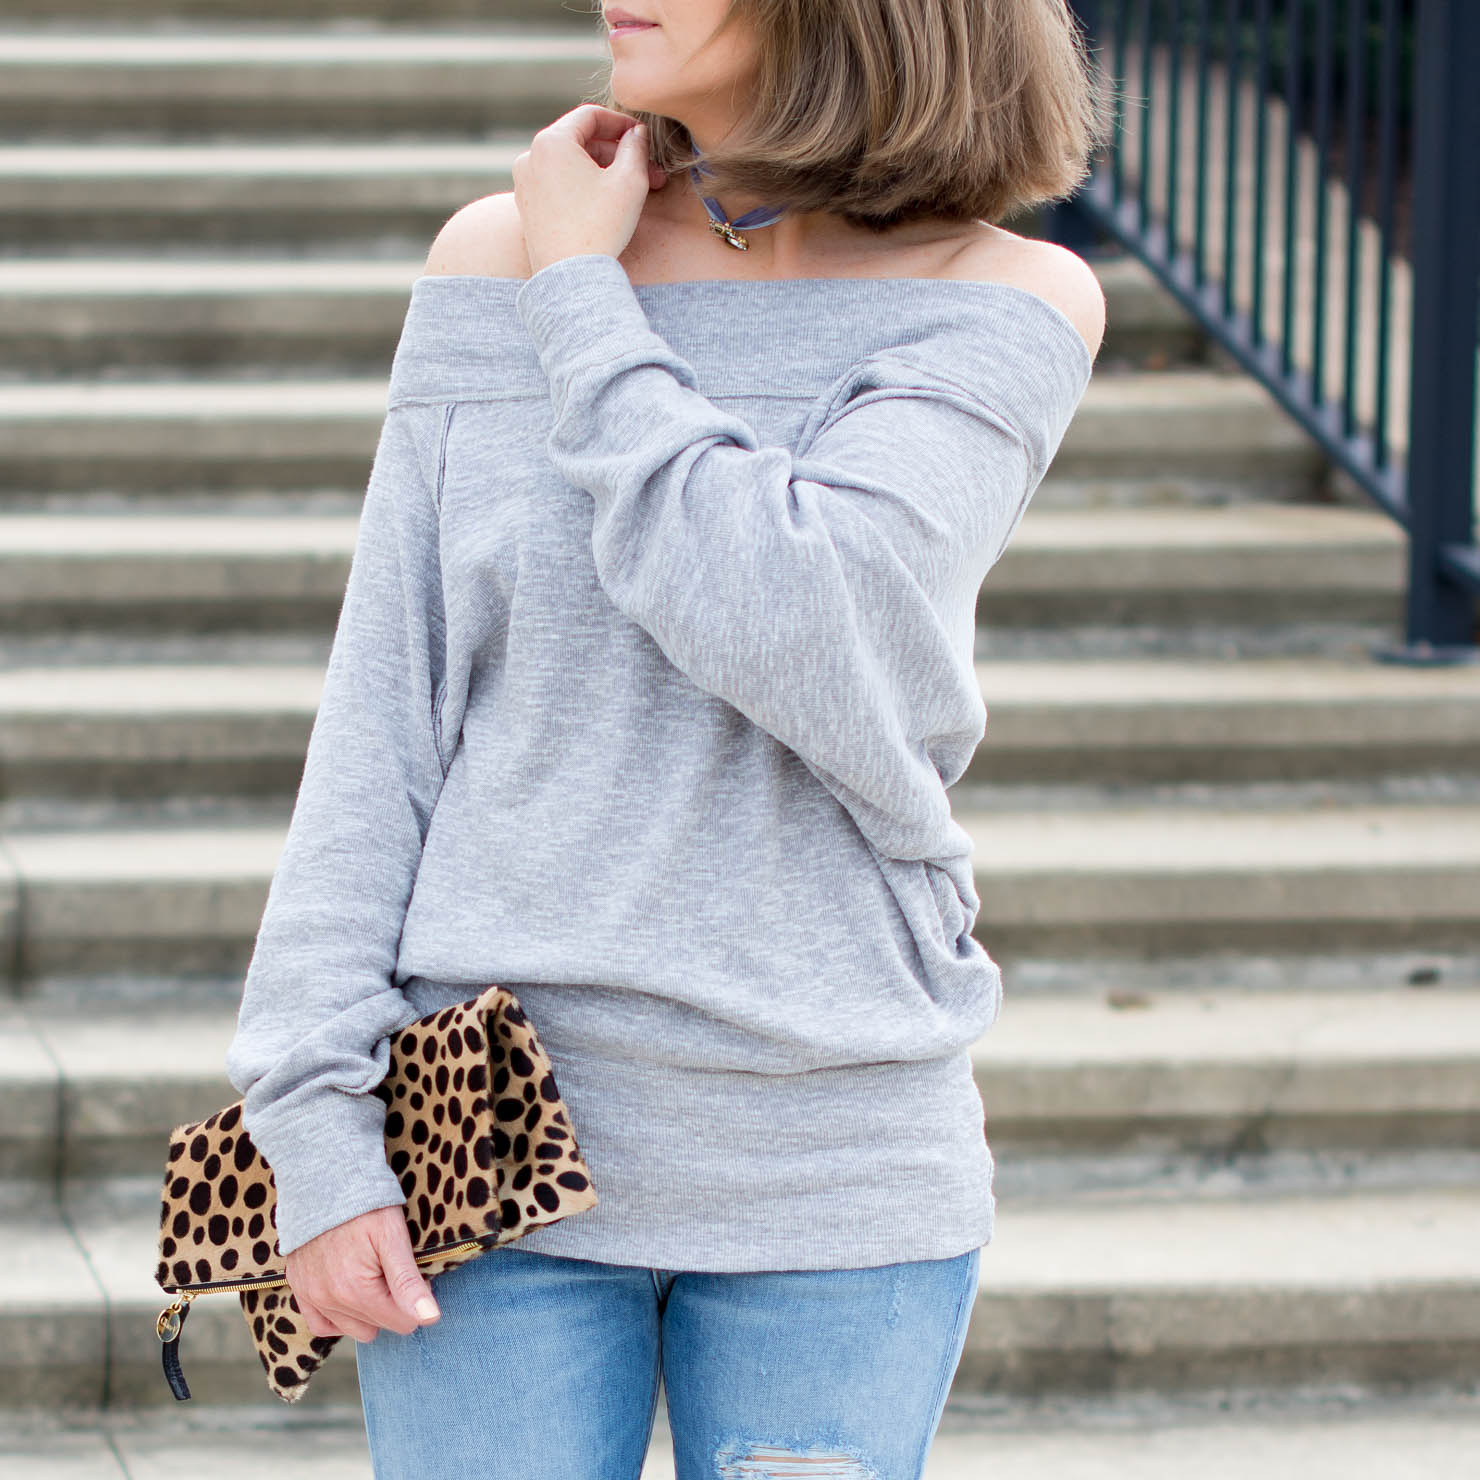 fall-fashion-the-perfect-off-the-shoulder-sweatshirt-life-lately-instagram-behind-the-scenes-falling-for-fall-fall-sales